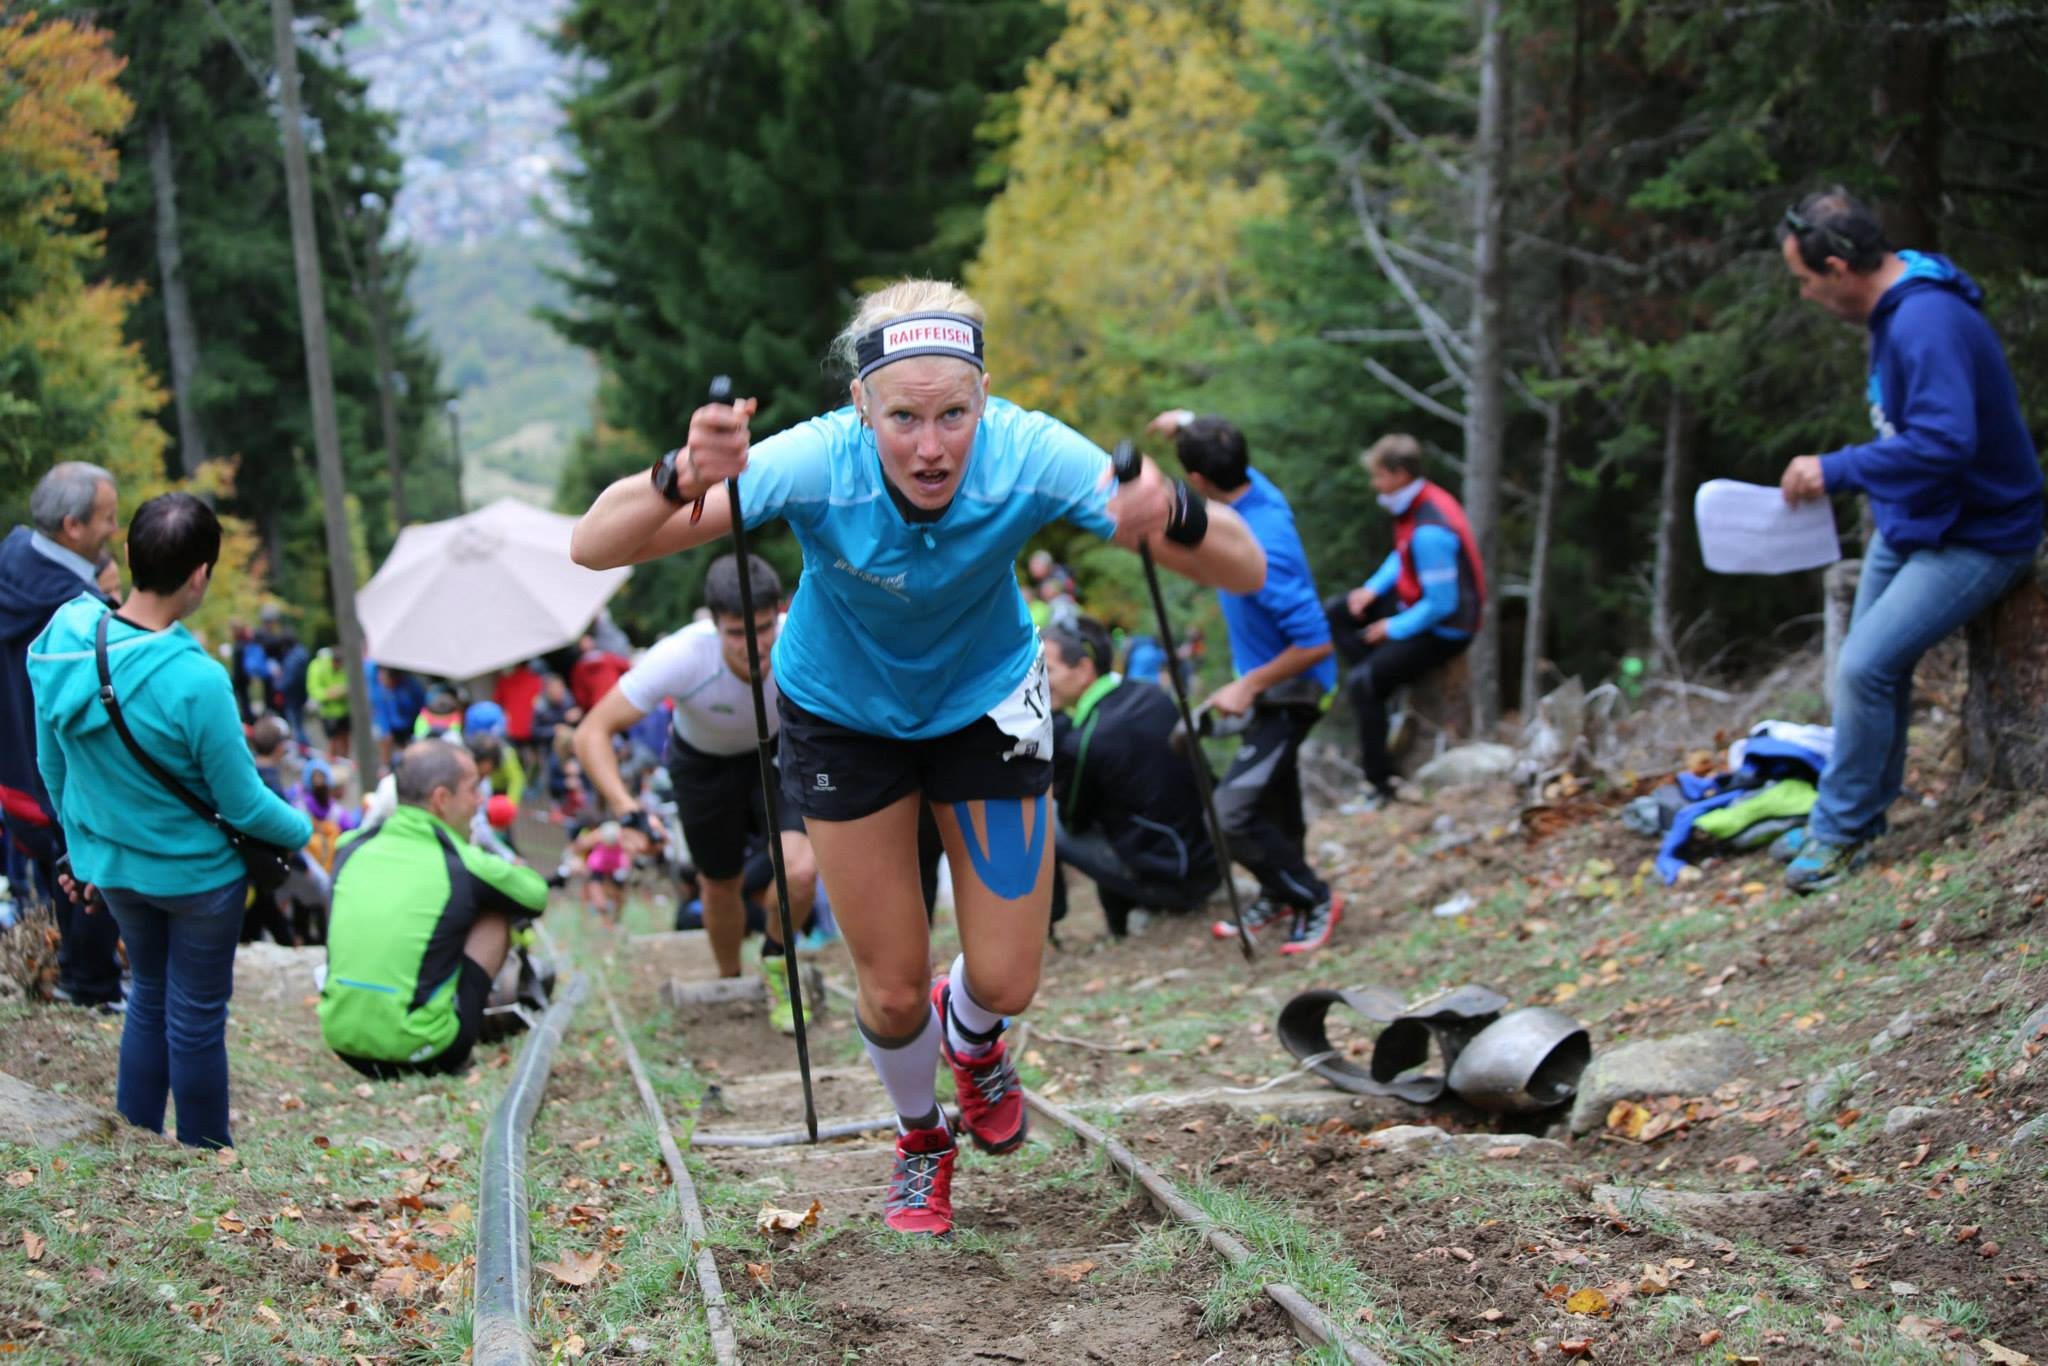 10661814 10152816642219176 4556801569542376769 o - PHOTOS DES ATHLETES FEMININES SUR LE KM VERTICAL DE FULLY (SUISSE) / 25-10-14